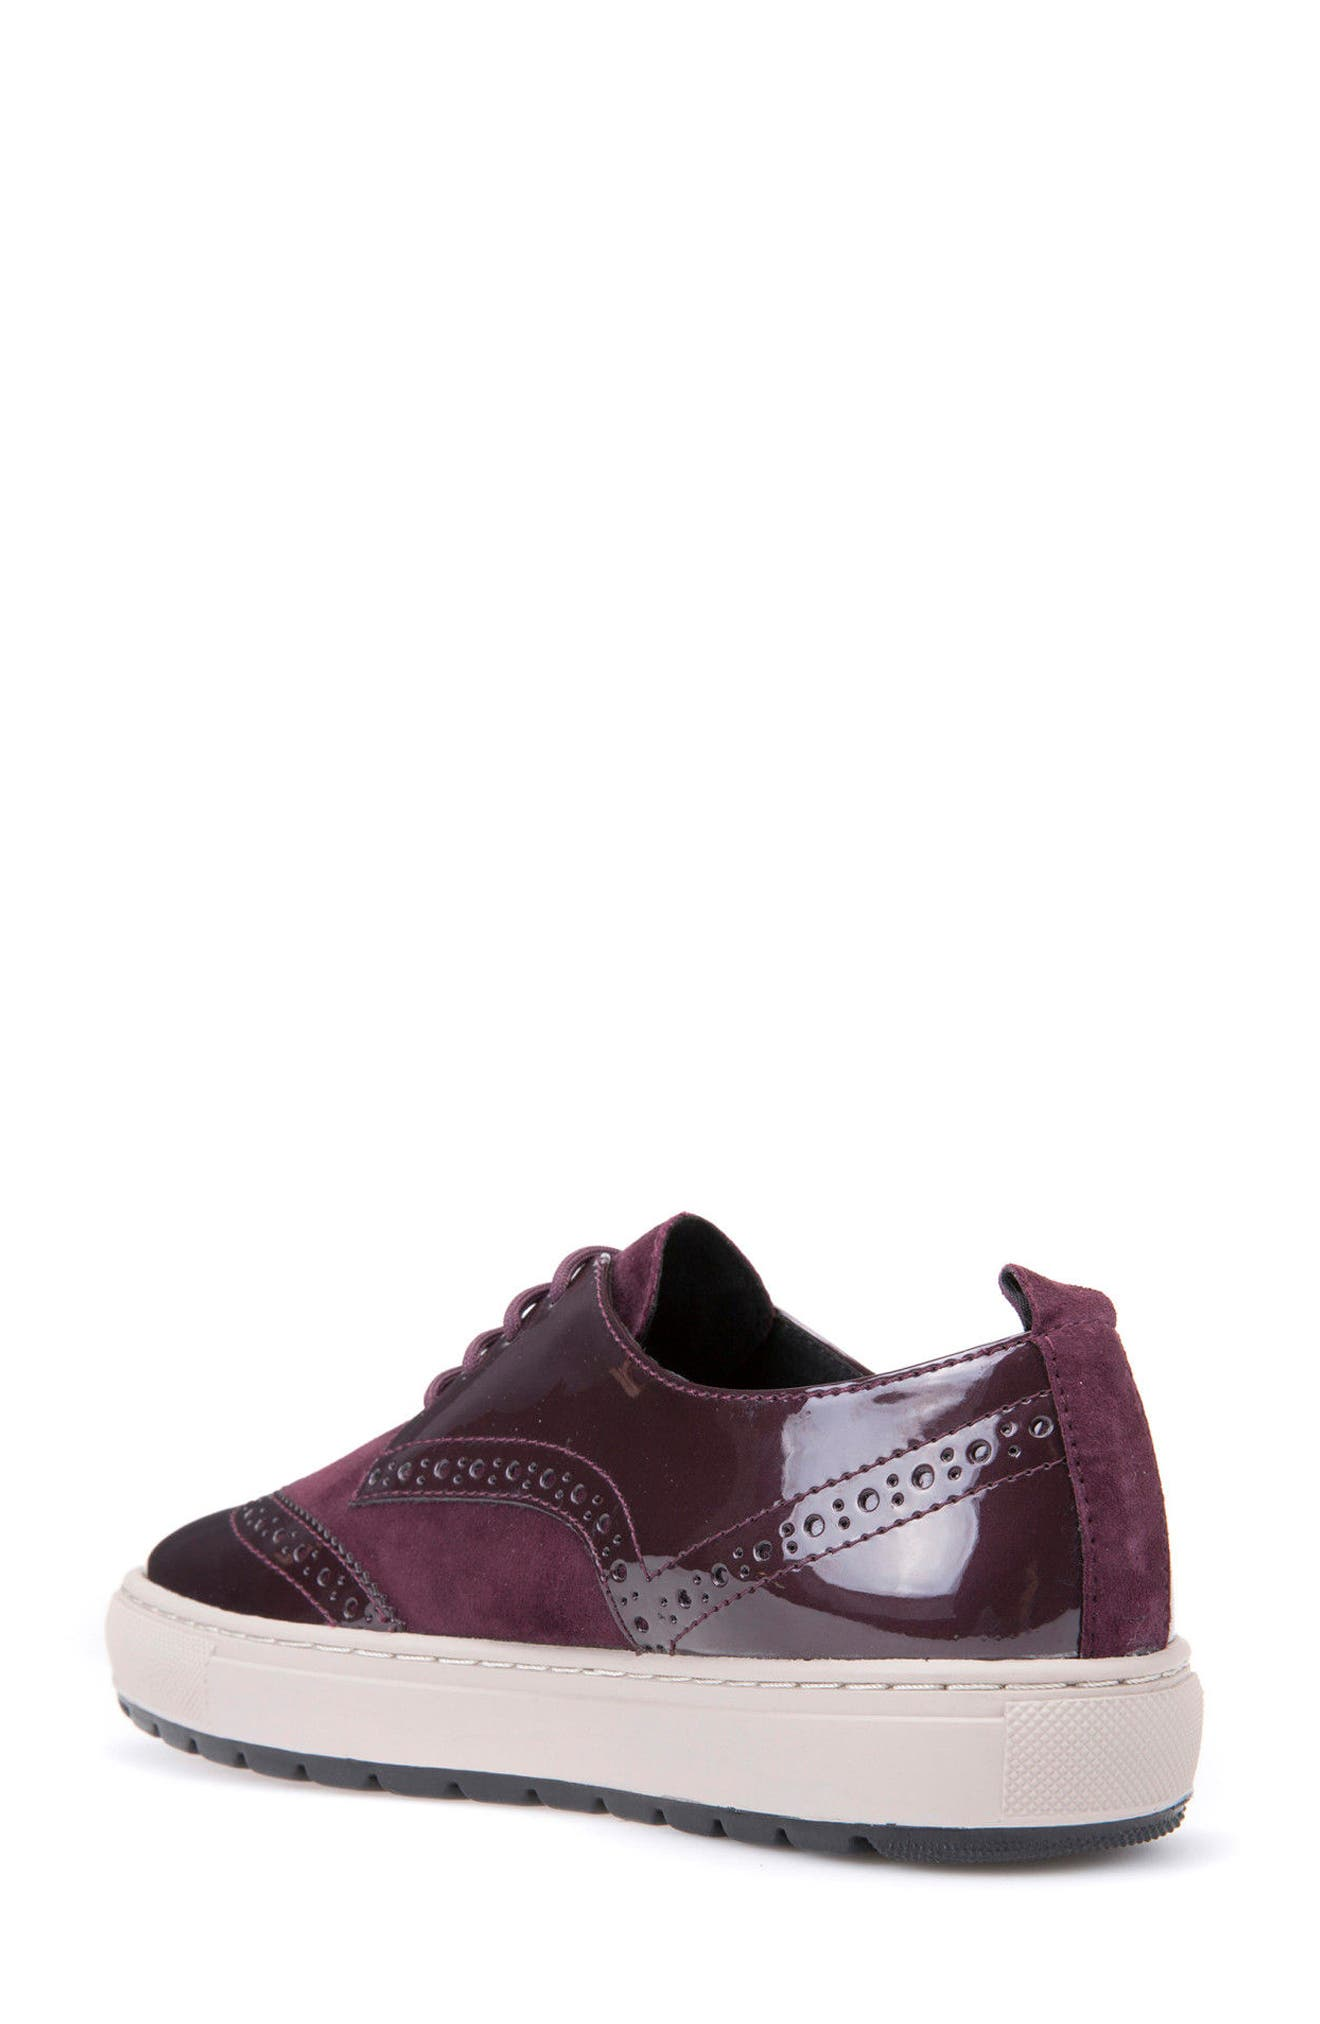 Breeda Oxford Sneaker,                             Alternate thumbnail 2, color,                             Prune Leather